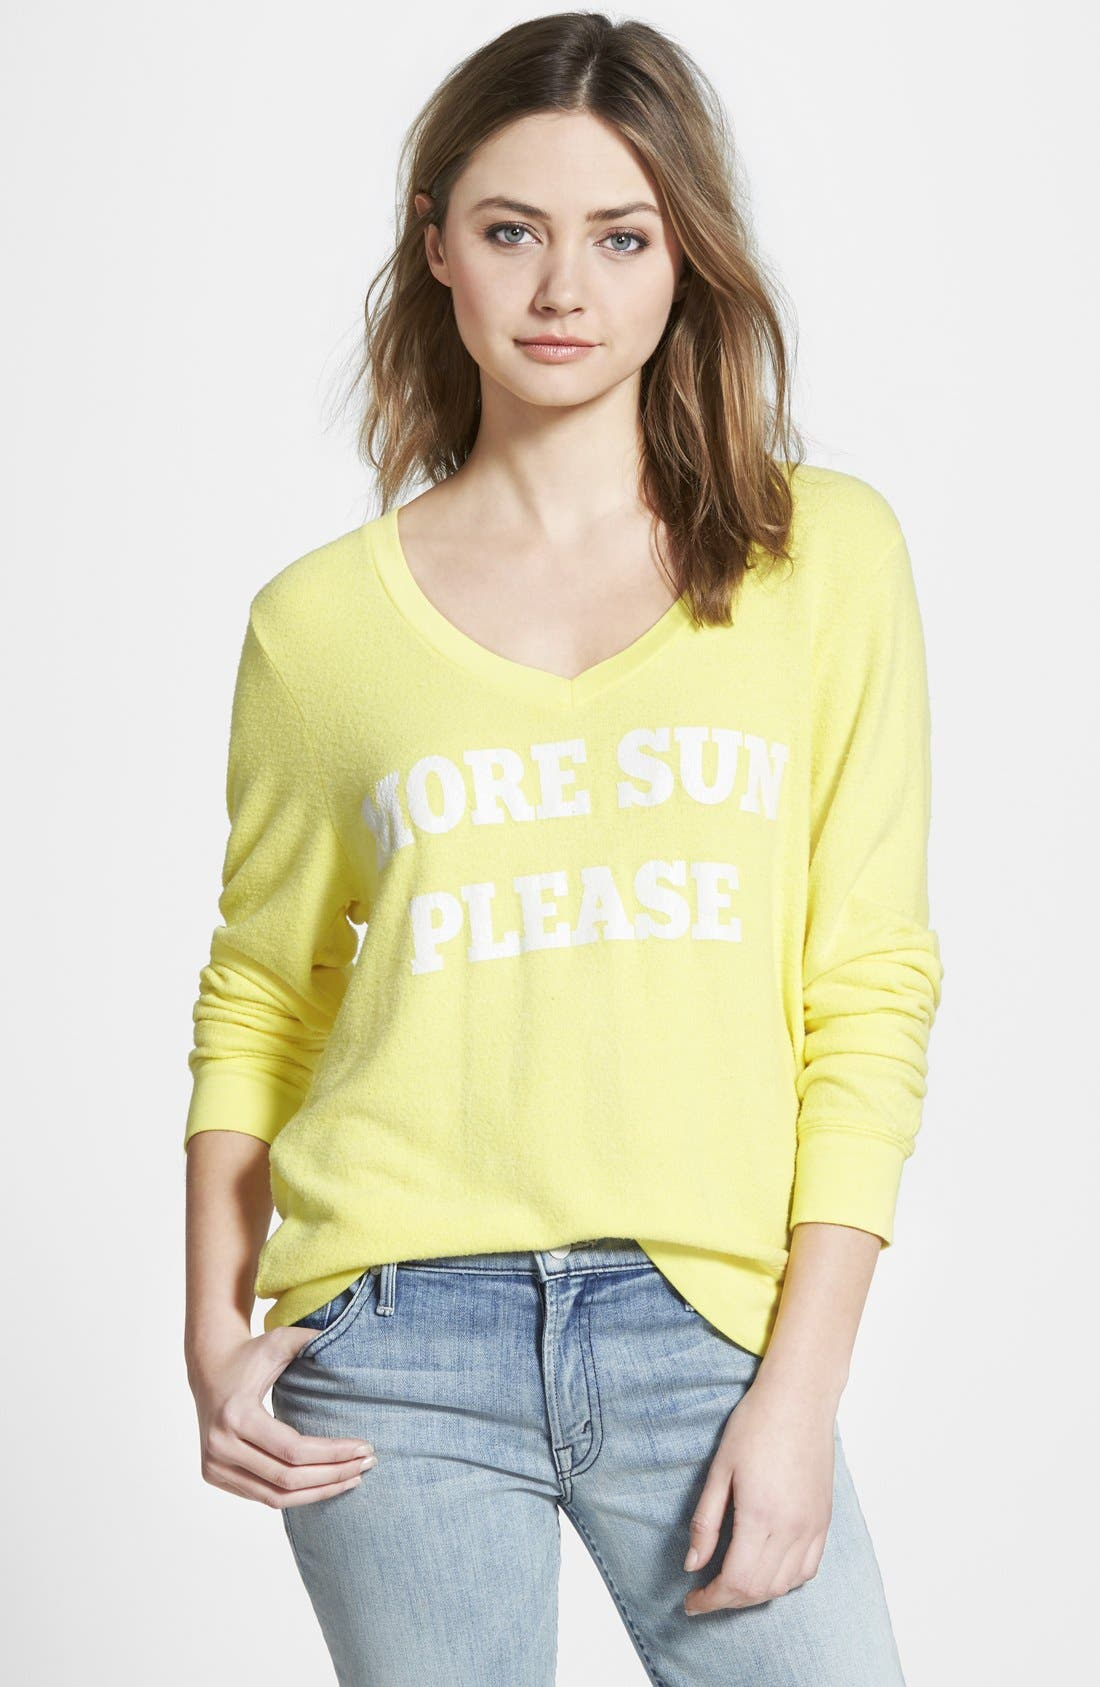 Alternate Image 1 Selected - Wildfox 'More Sun' V-Neck Sweatshirt